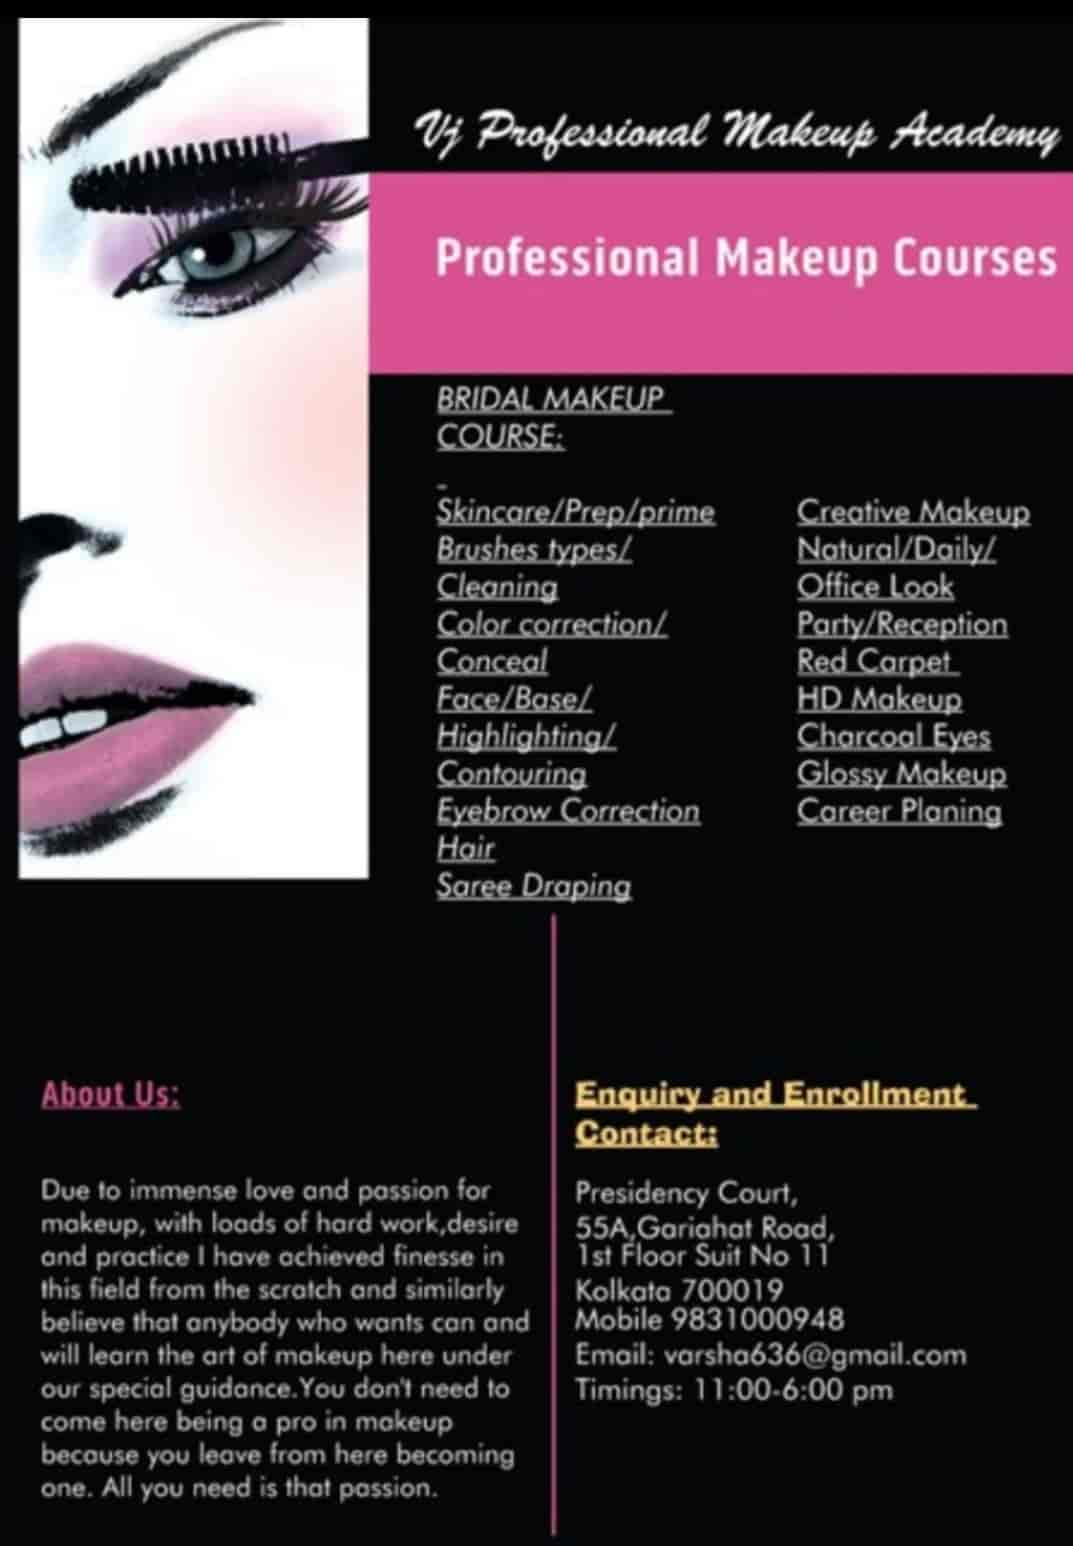 Vj Proffesional Makeup Academy Ballygunge Makeup Artists In